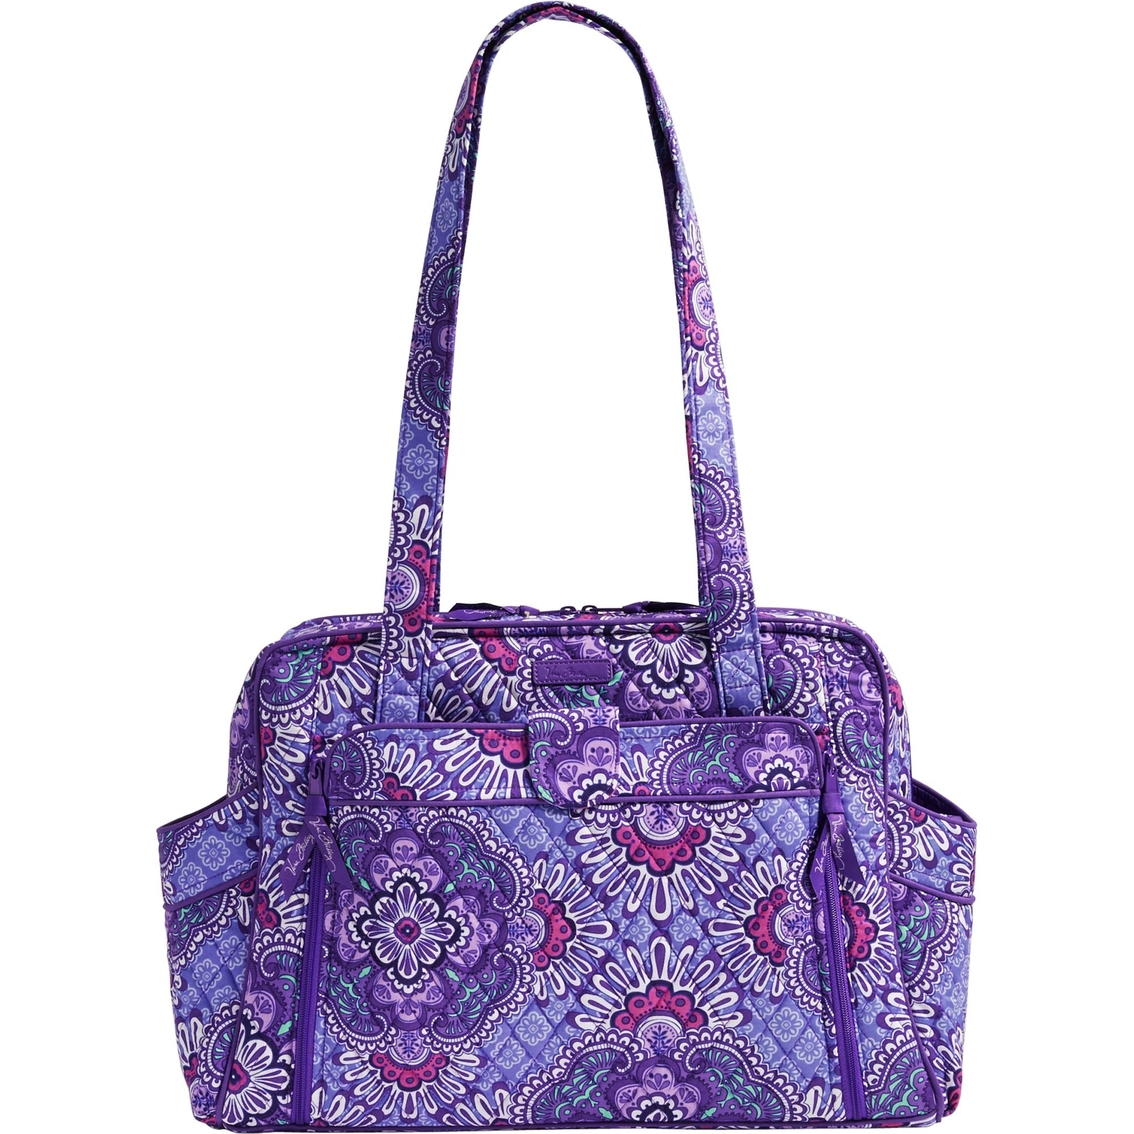 vera bradley stroll around baby bag lilac tapestry diaper bags accessories baby toys. Black Bedroom Furniture Sets. Home Design Ideas